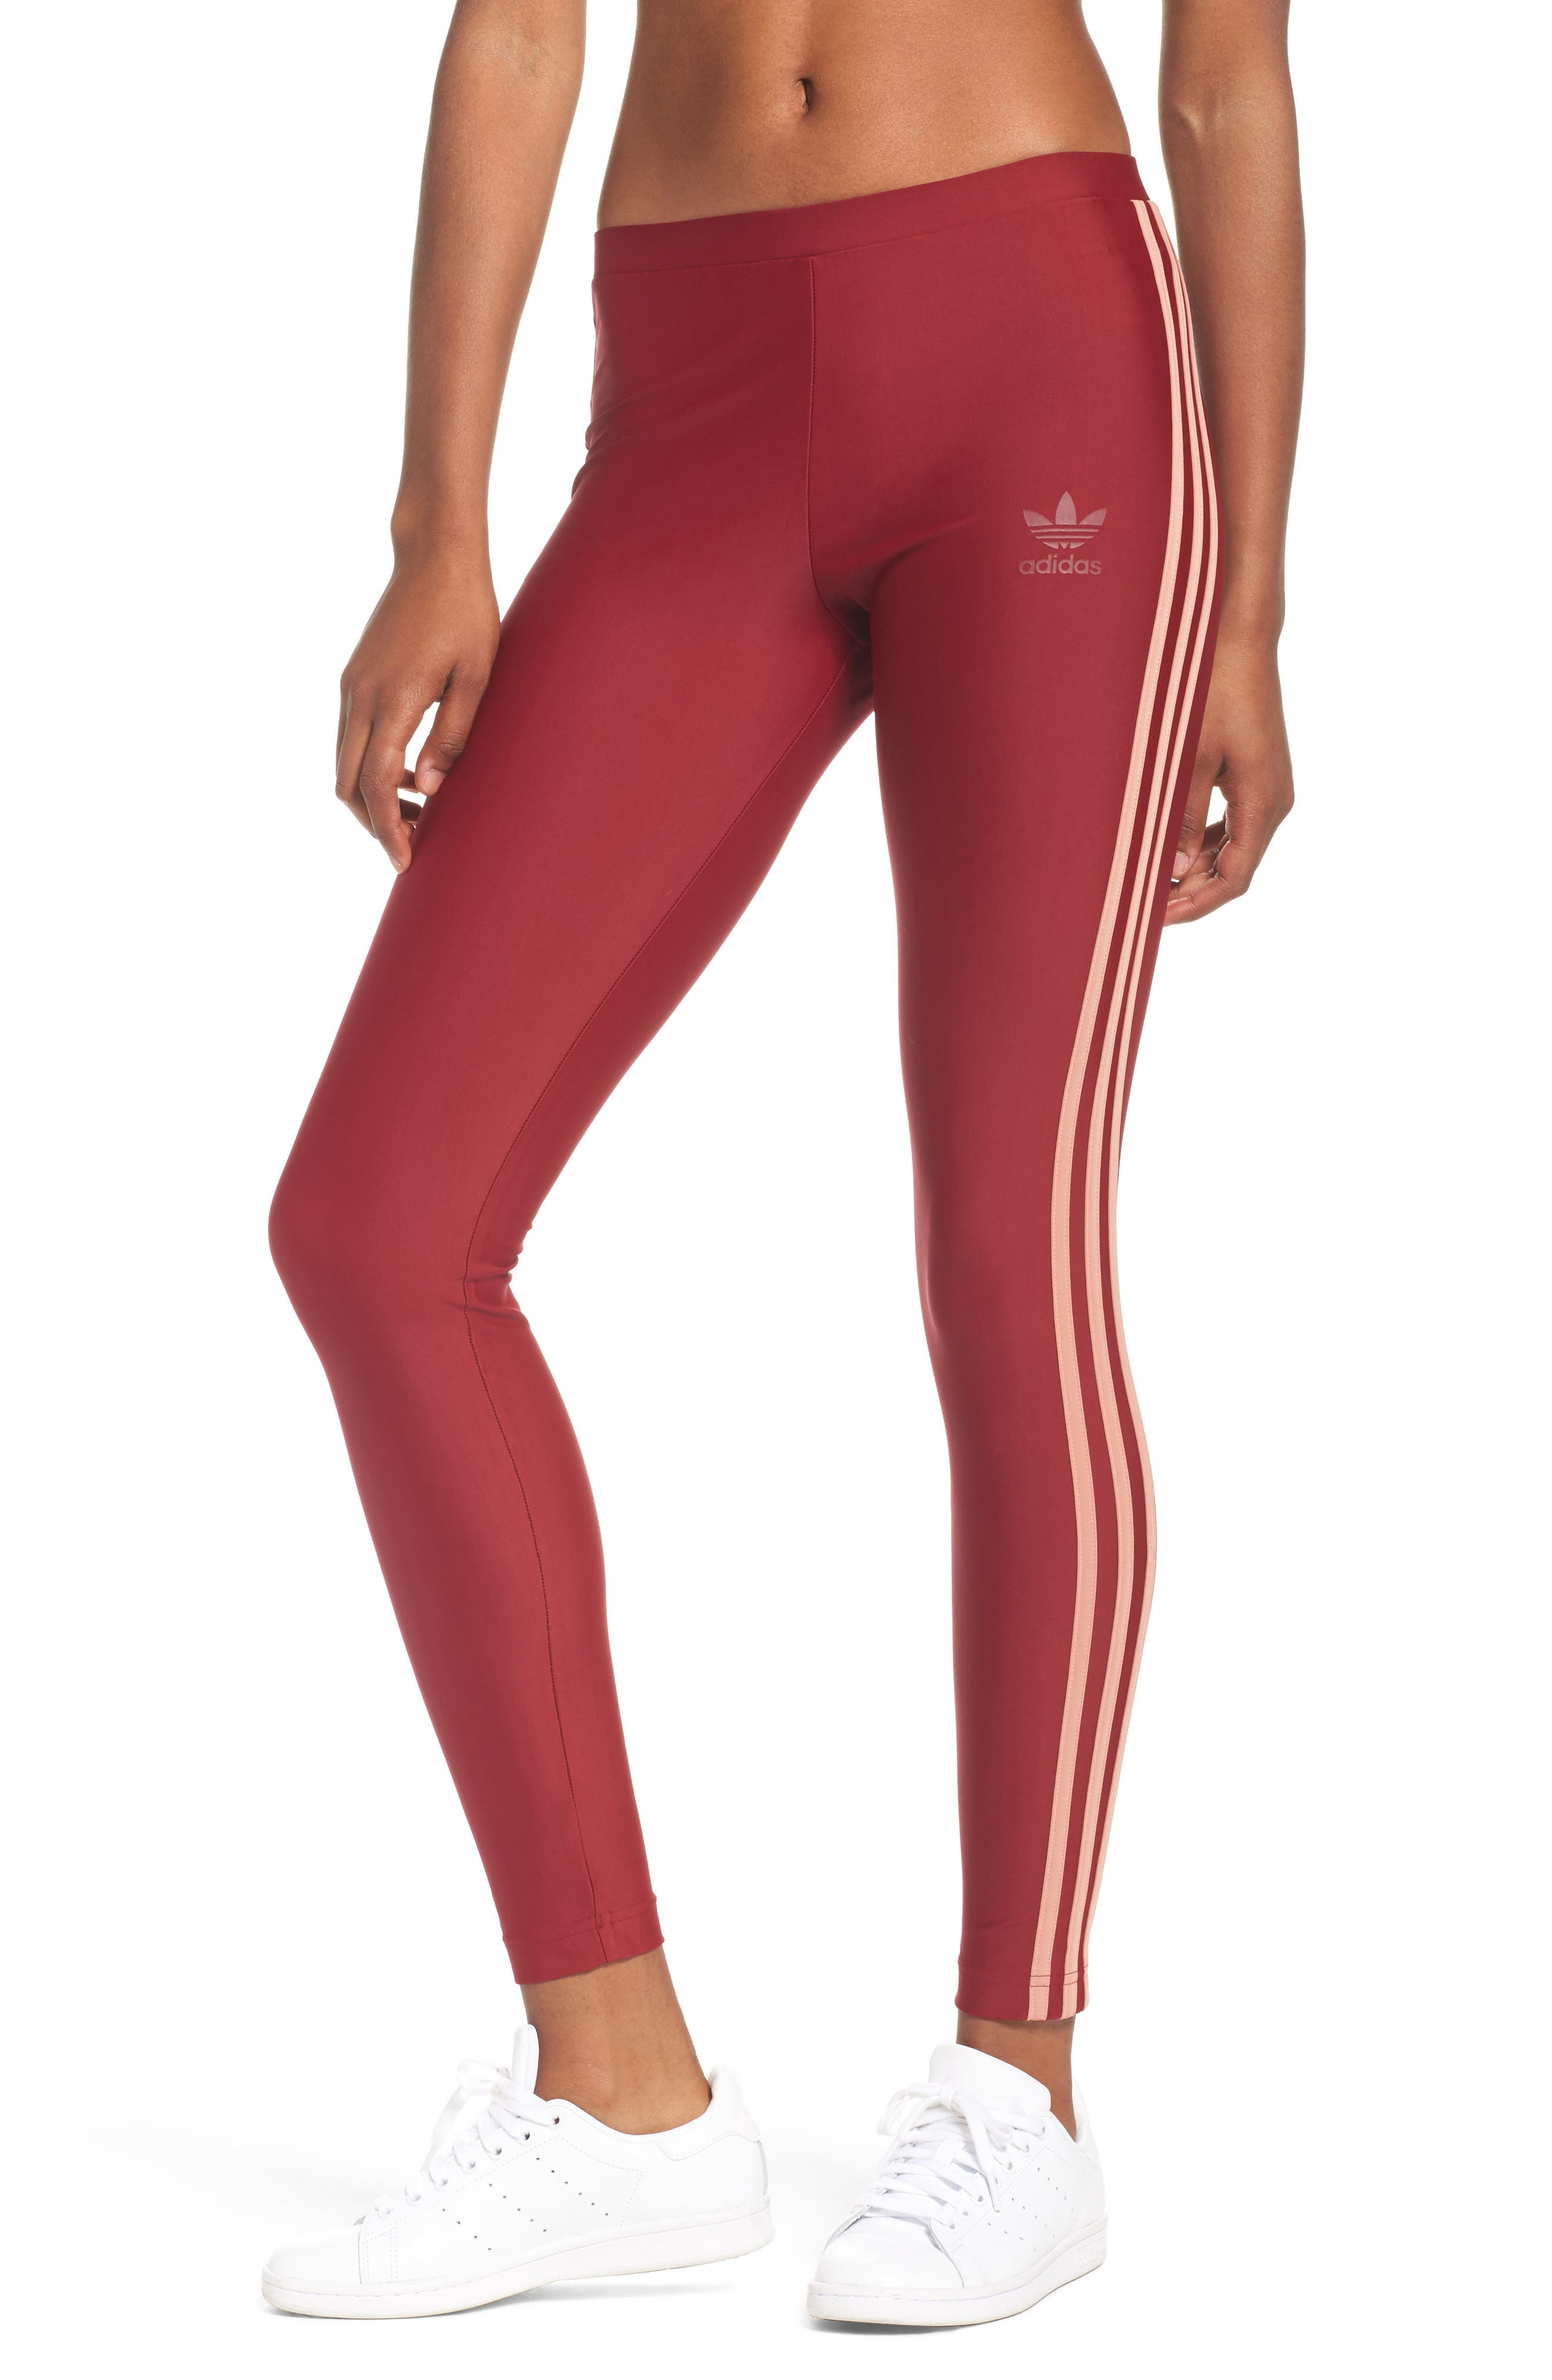 Originals Leggings,                         Main,                         color, Collegiate Burgundy